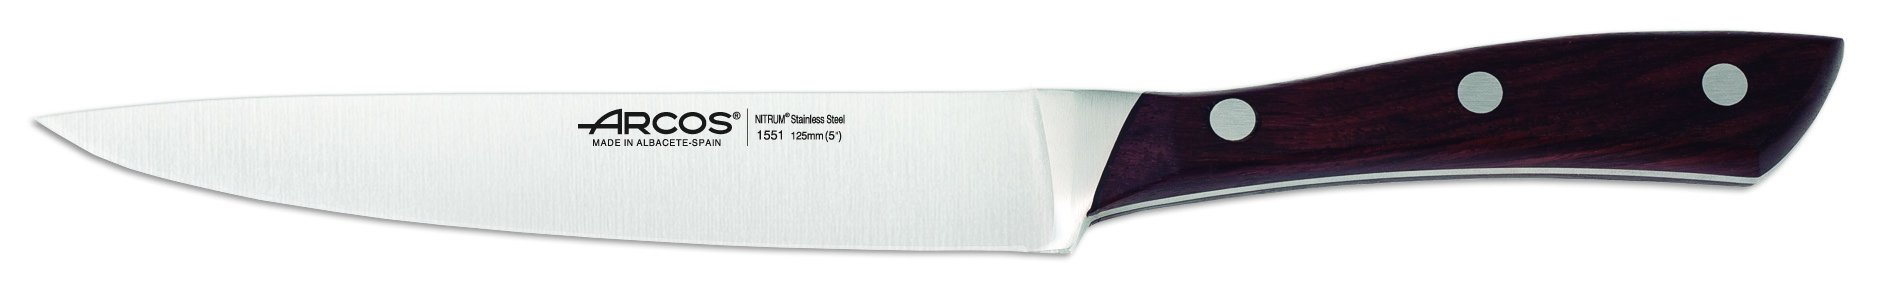 Arcos Natura Forged Vegetable Knife, 5-Inch